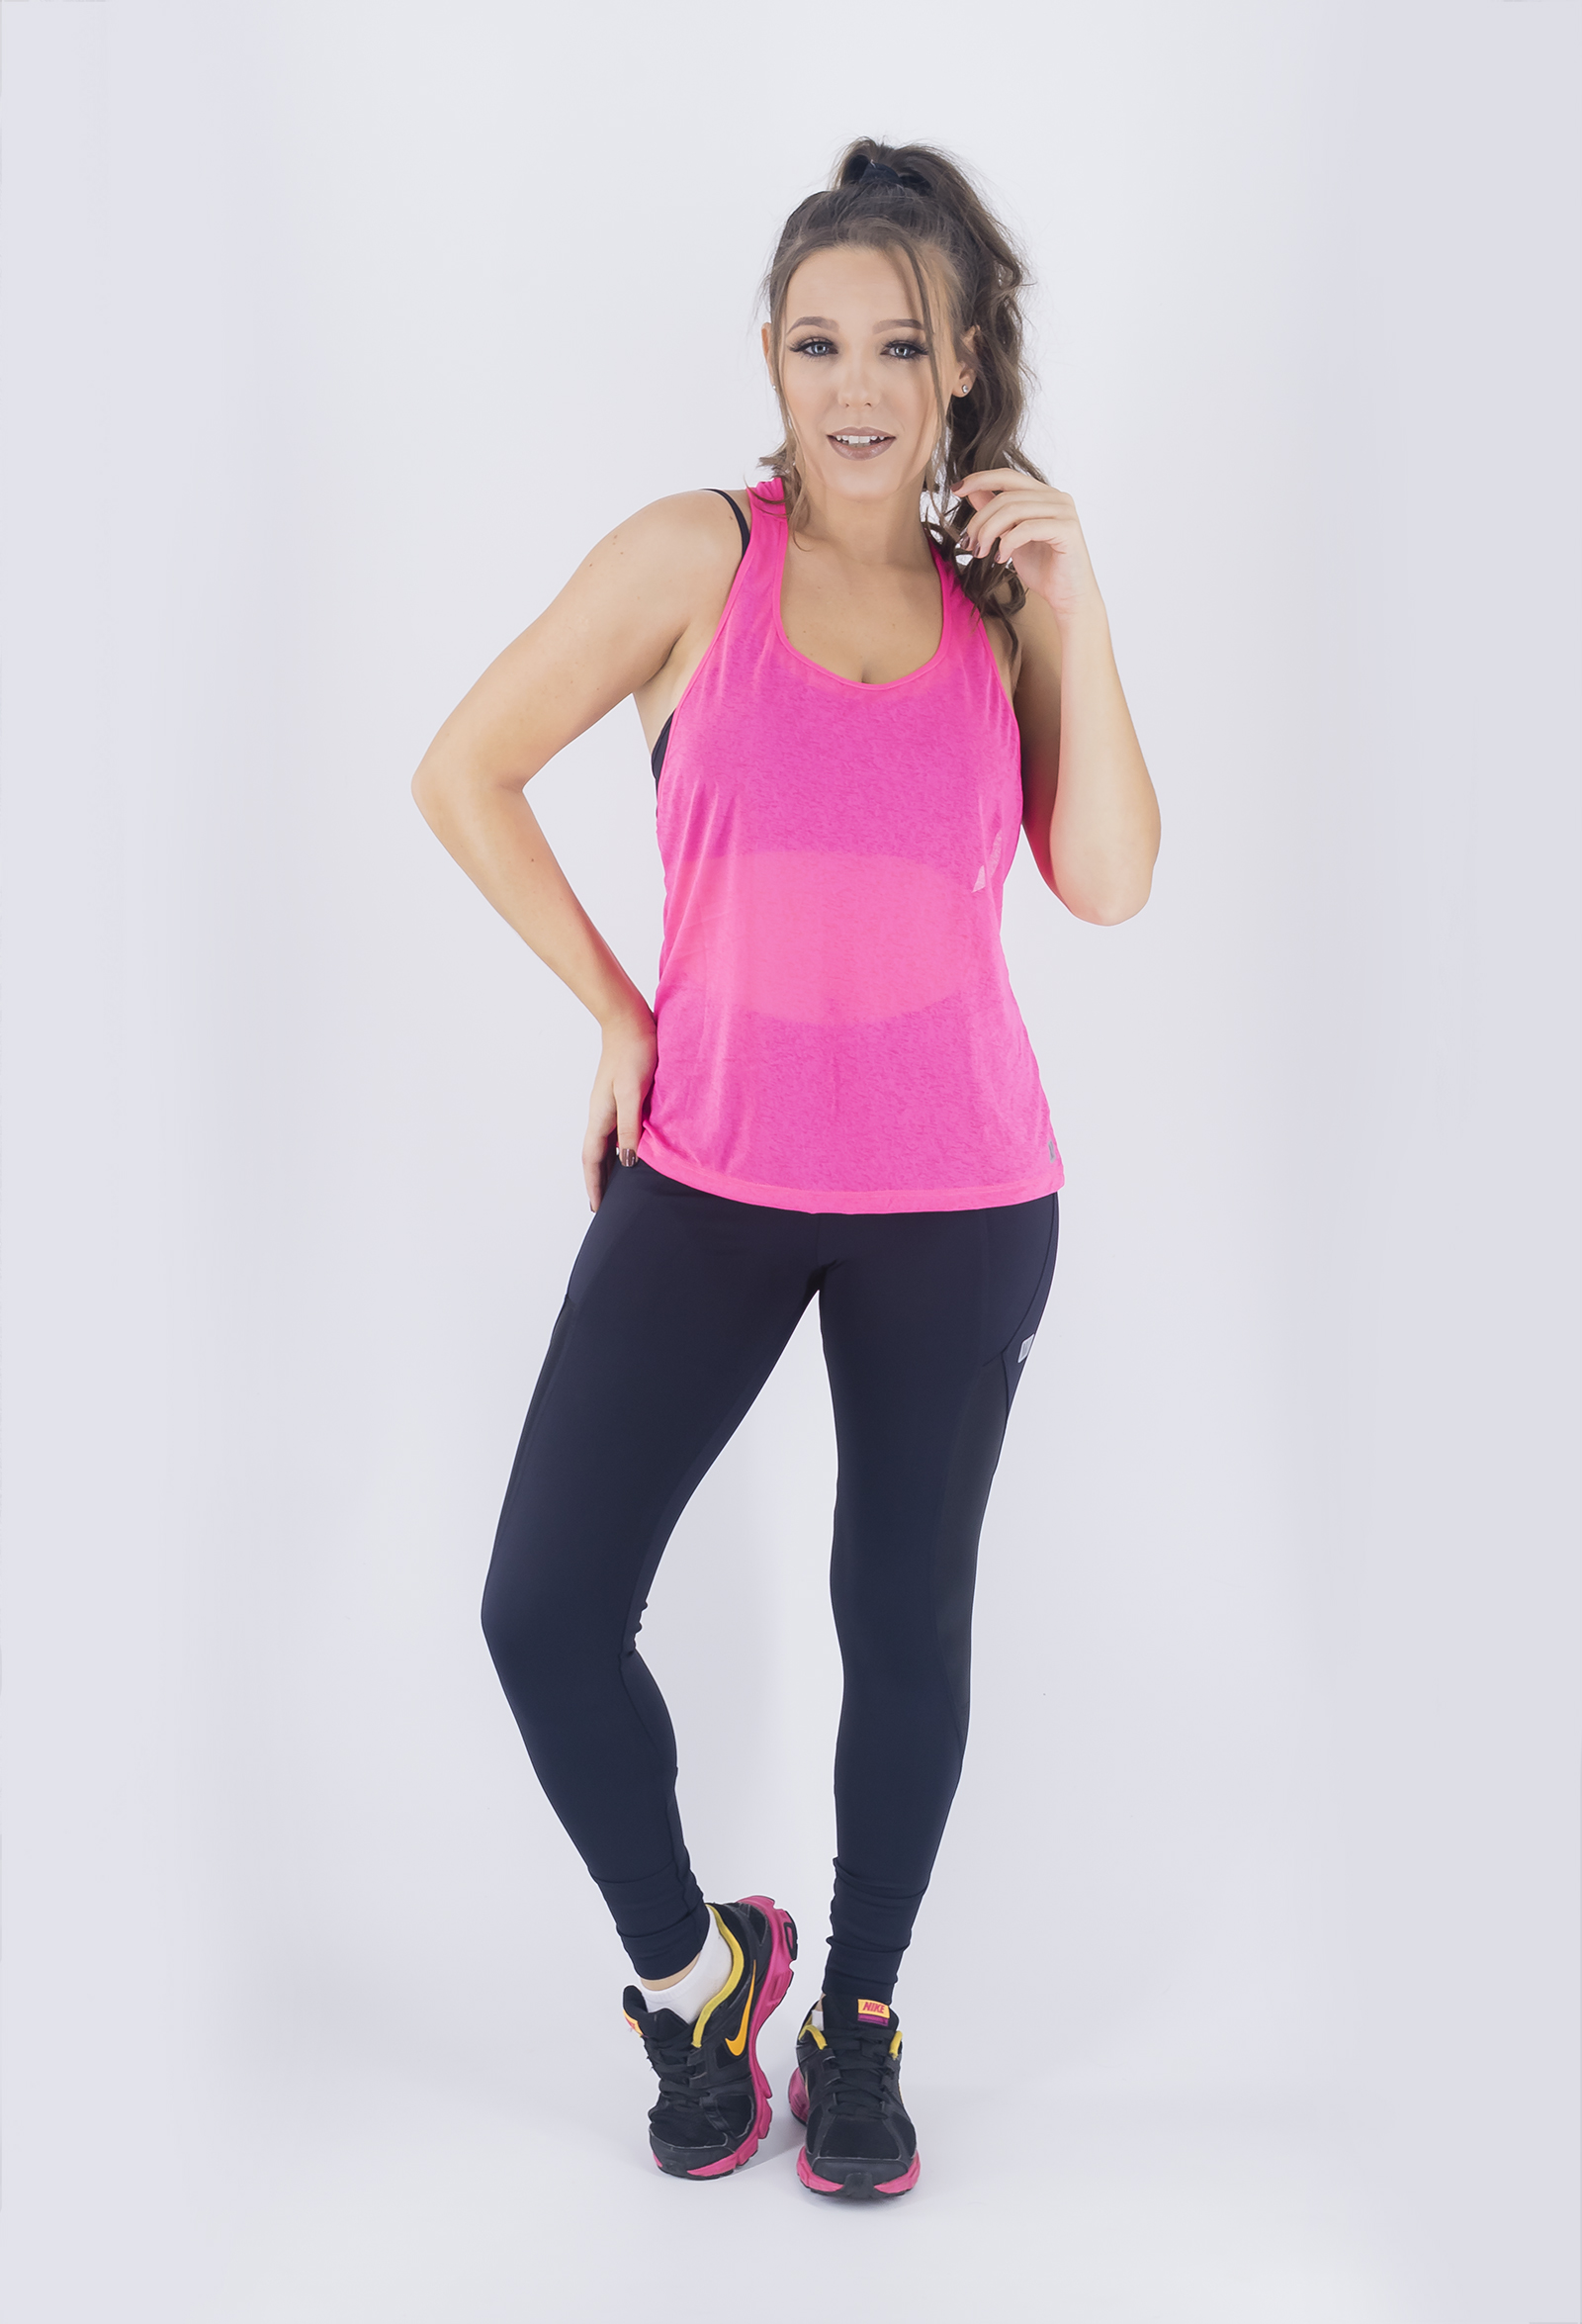 Regata Cava Fabulous Pink New, Coleção Just For You - NKT Fitwear Moda Fitness